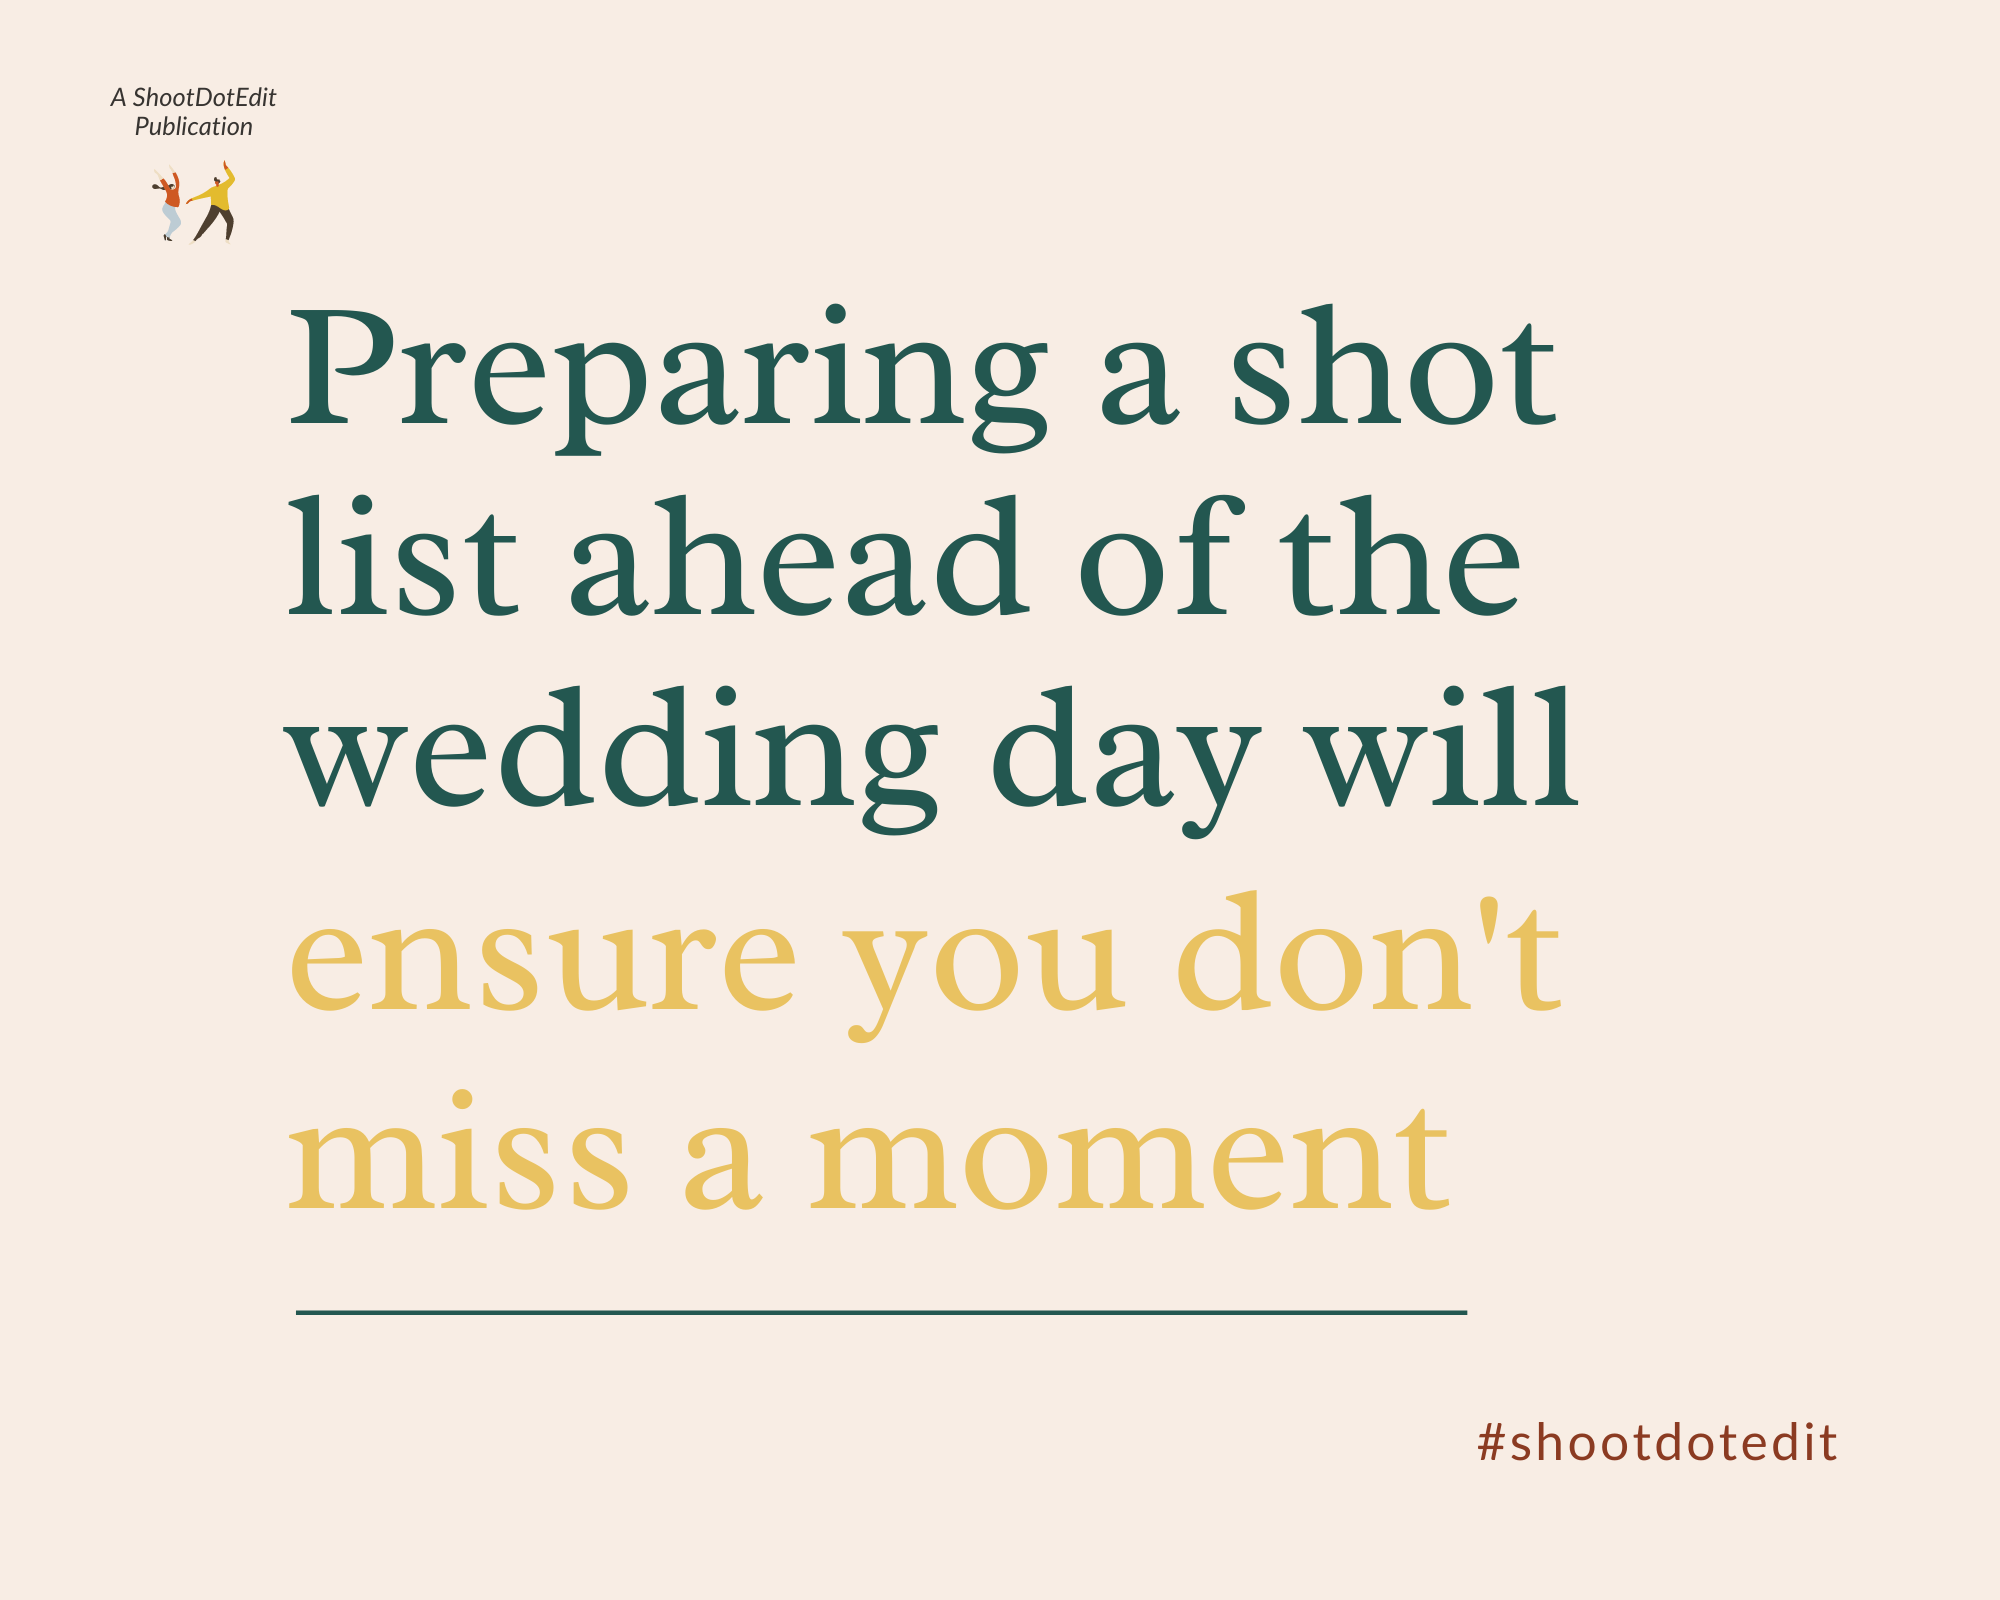 Infographic stating preparing a shot list ahead of the wedding day will ensure you do not miss a moment